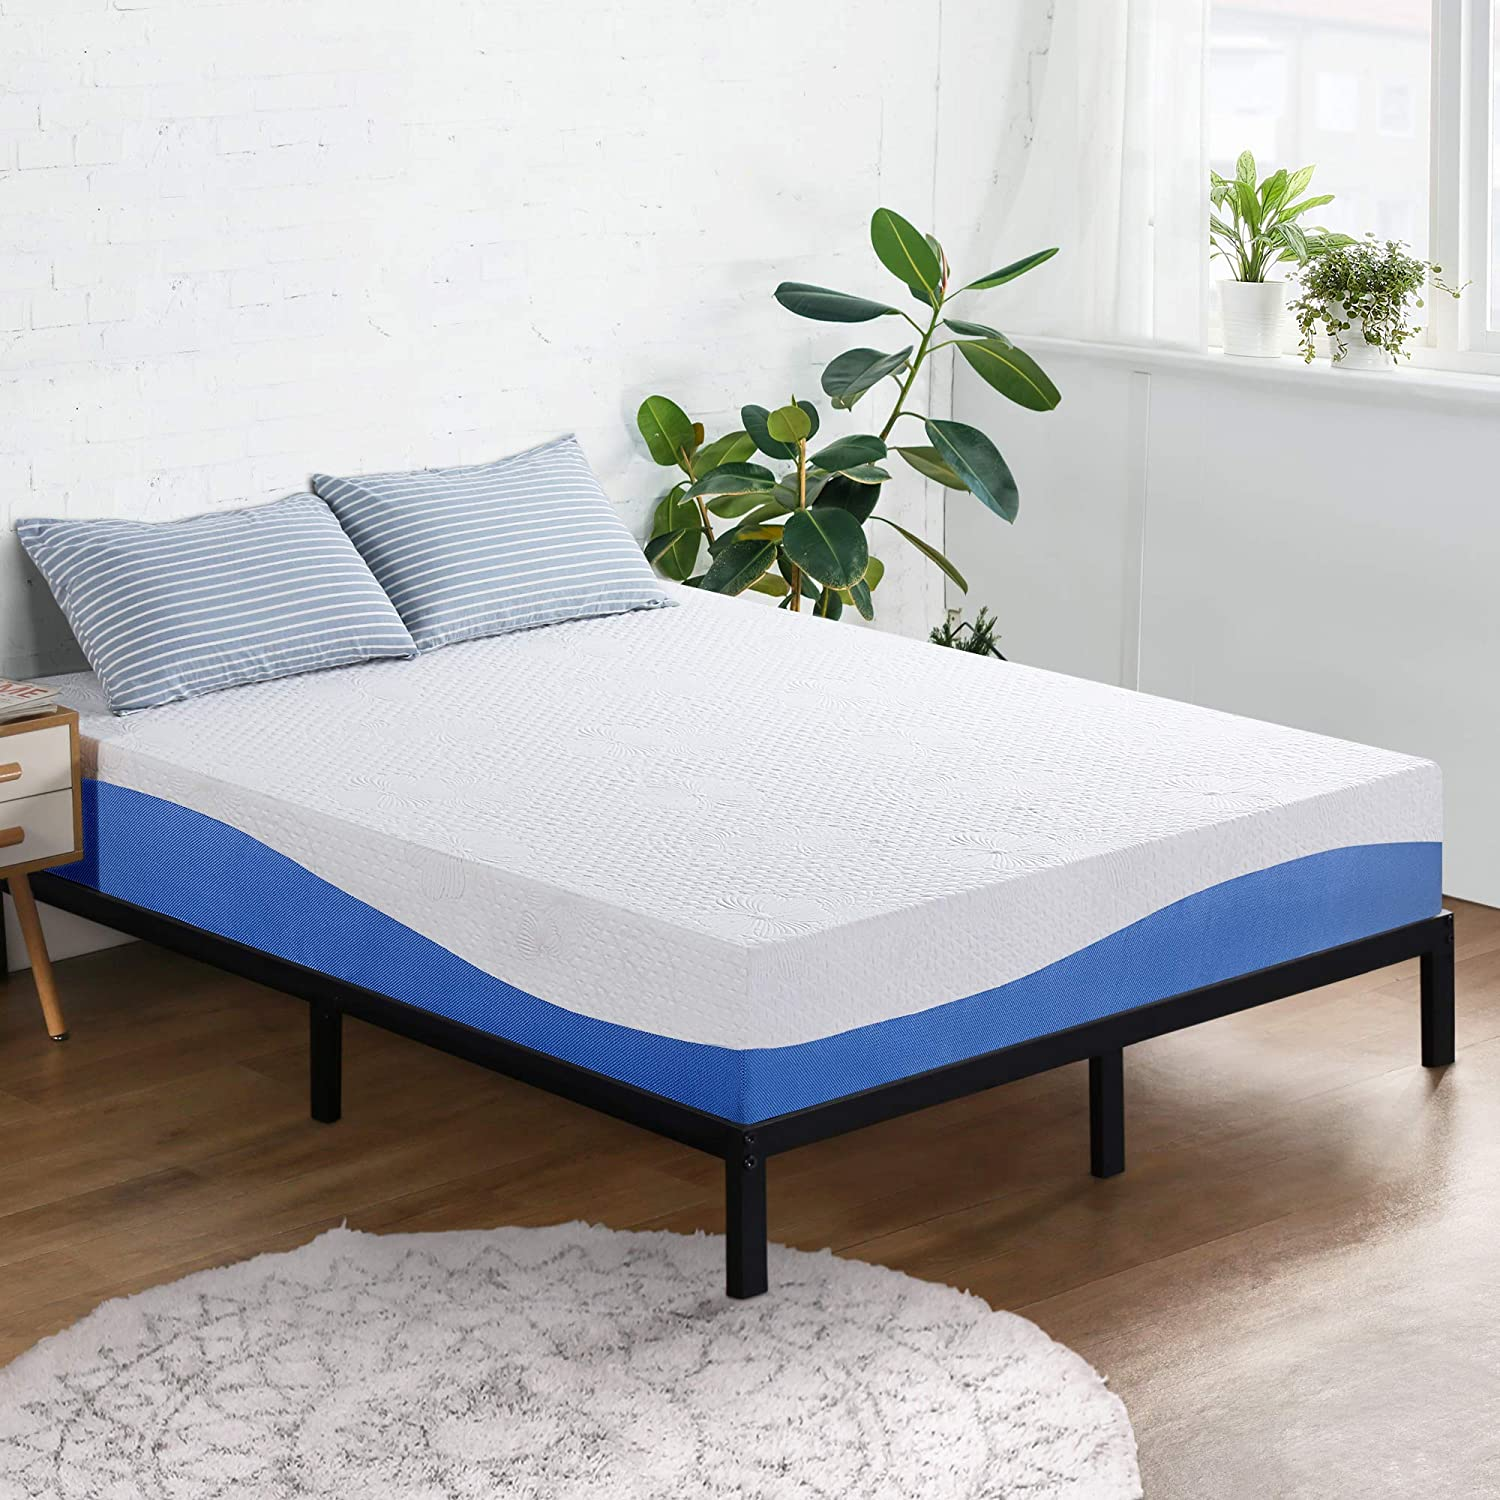 Olee Sleep Aquarius 10 Inch Memory Foam Mattress In Blue Queen Furniture Decor